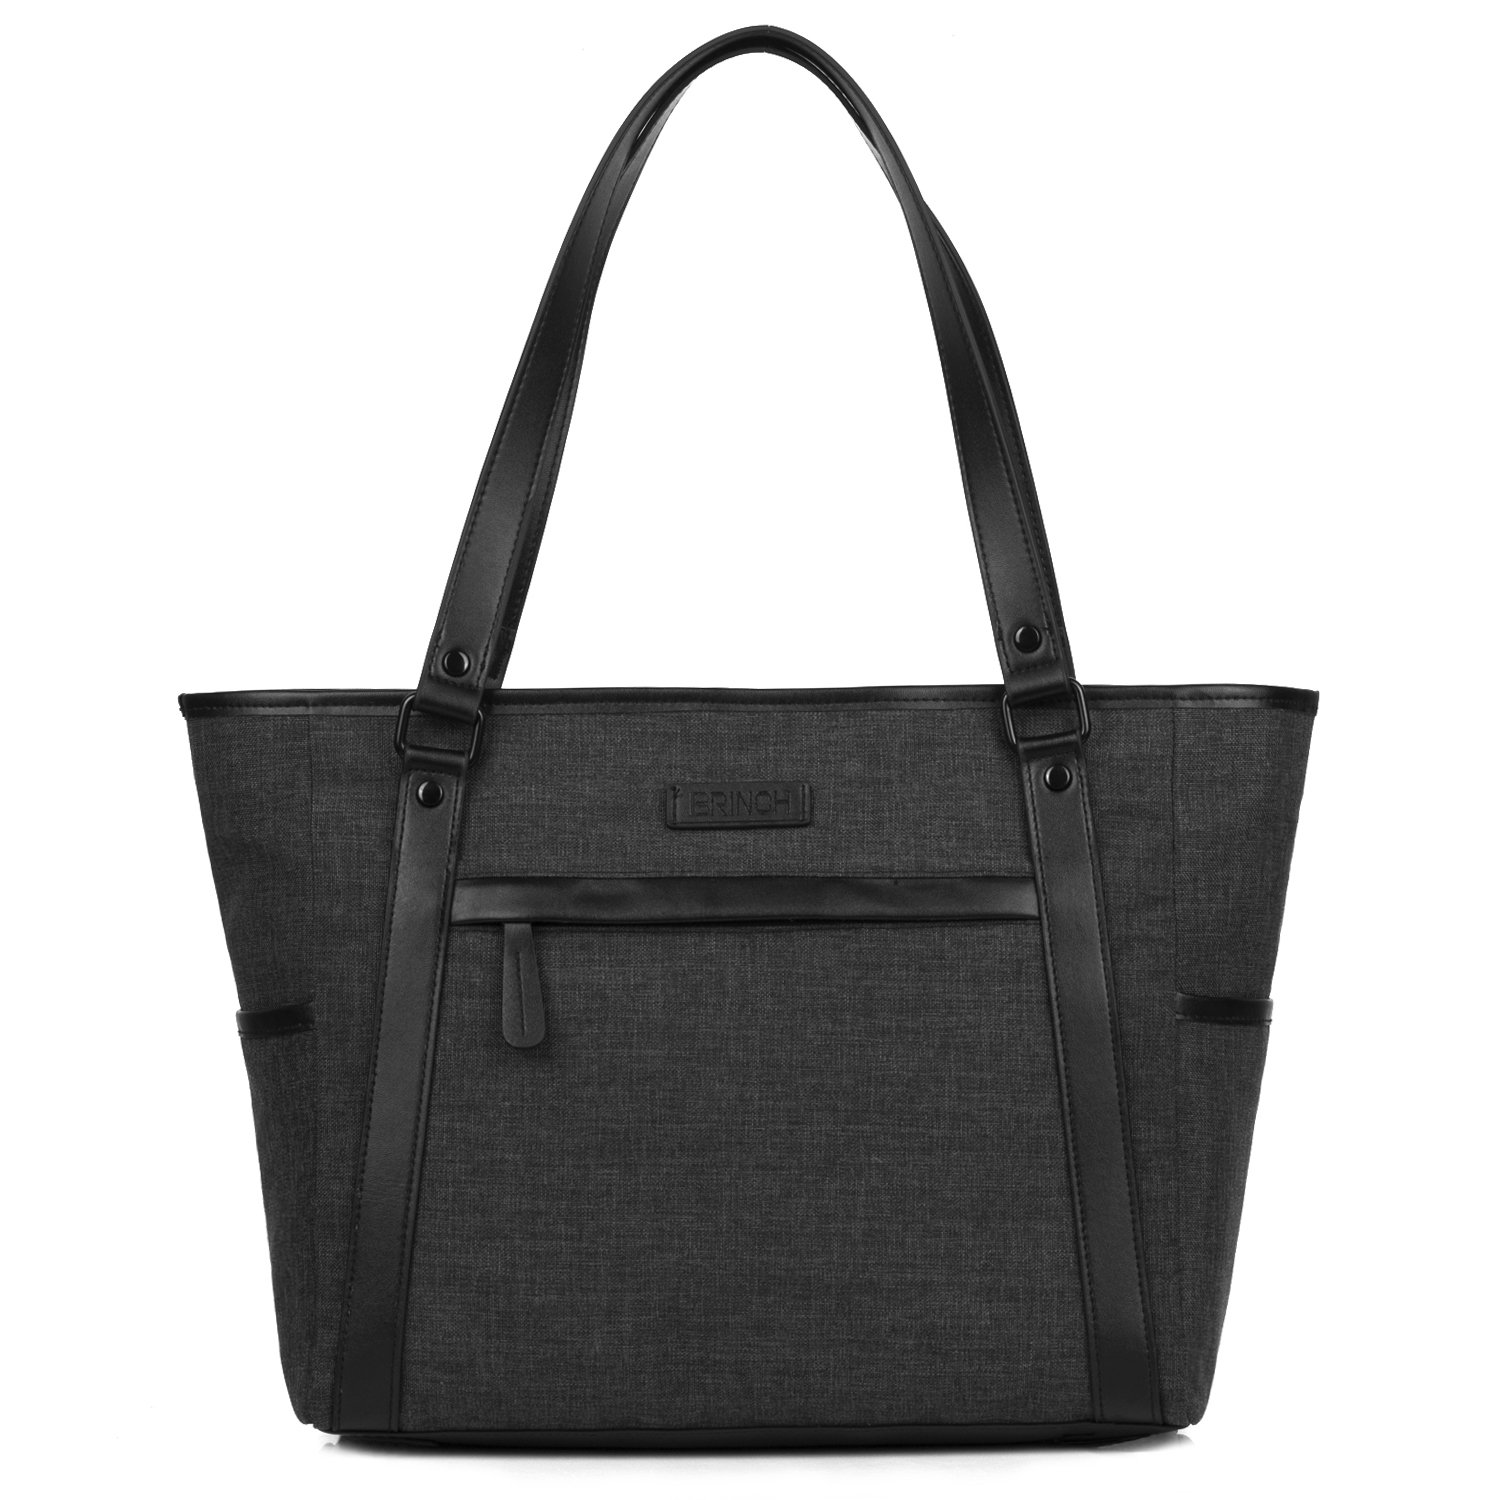 Womens Laptop Tote Bag,BRINCH Classic Nylon Work Tote Bag Shopping Bag Carry Travel Business Briefcase Shoulder Bag Handbag for Up to 15.6 Inch Laptop/Notebook / MacBook/Tablet,Black